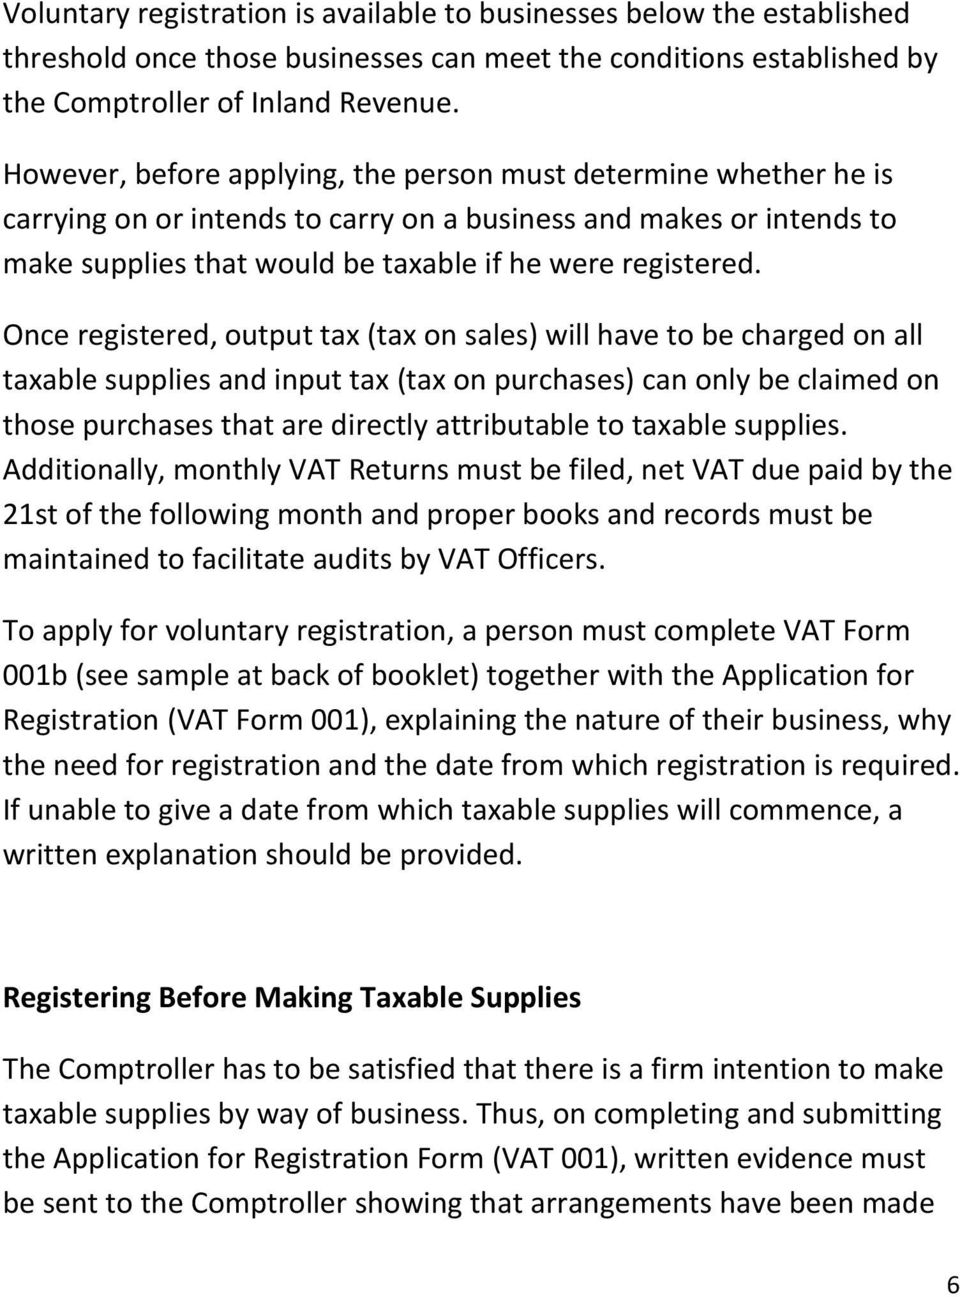 Once registered, output tax (tax on sales) will have to be charged on all taxable supplies and input tax (tax on purchases) can only be claimed on those purchases that are directly attributable to